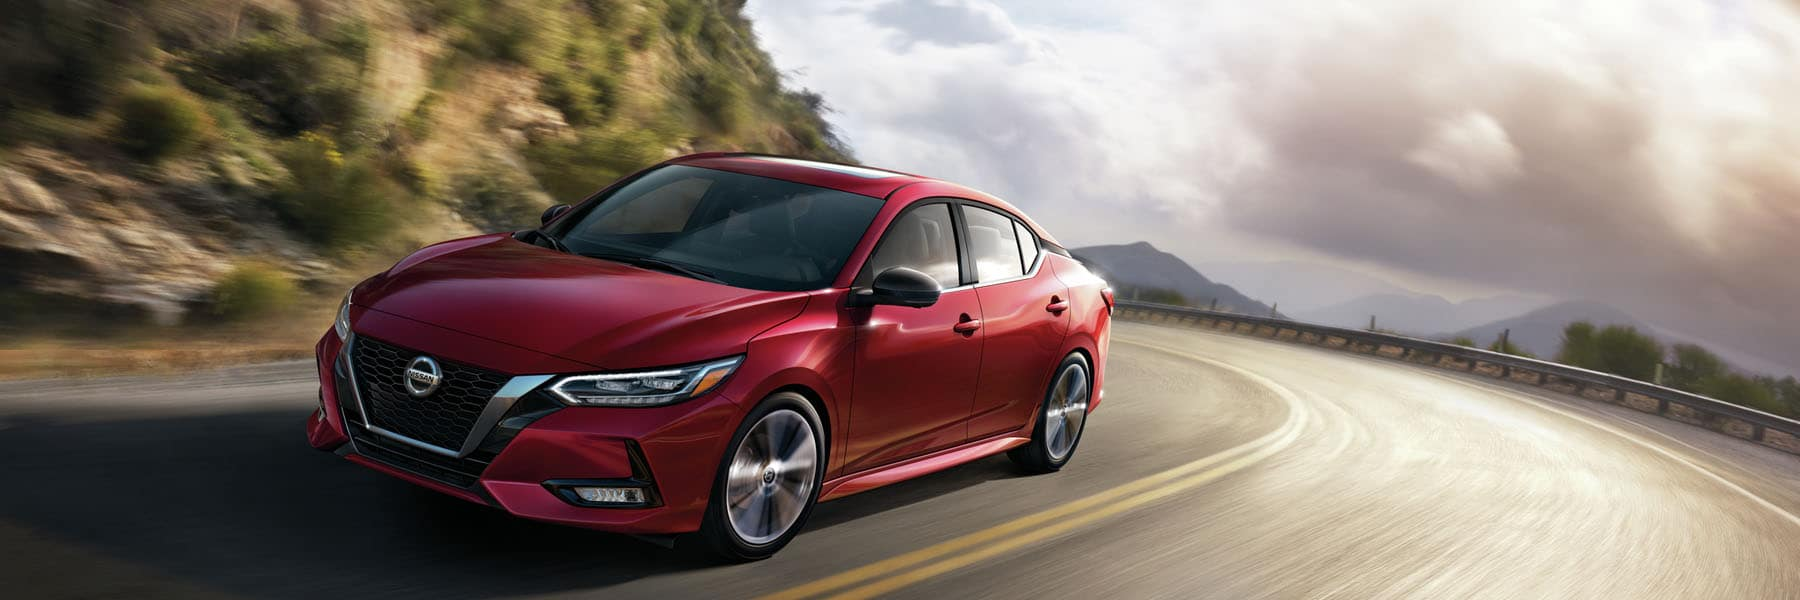 Best New 2021 Nissan Sentra Lease and Purchase Specials in Denver, CO